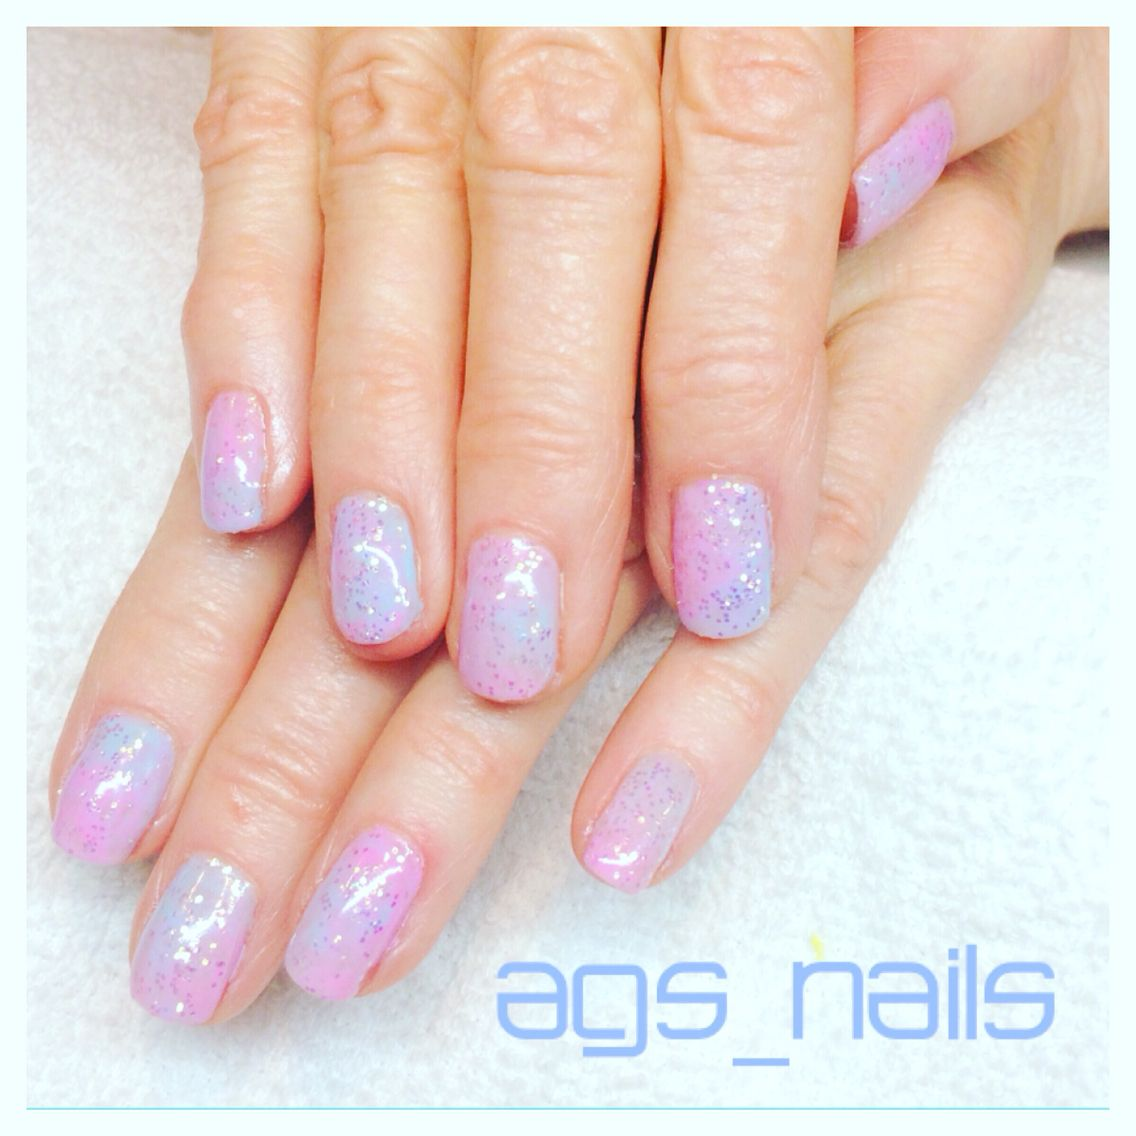 Pink blue marble gel nails | ags_nails | Pinterest